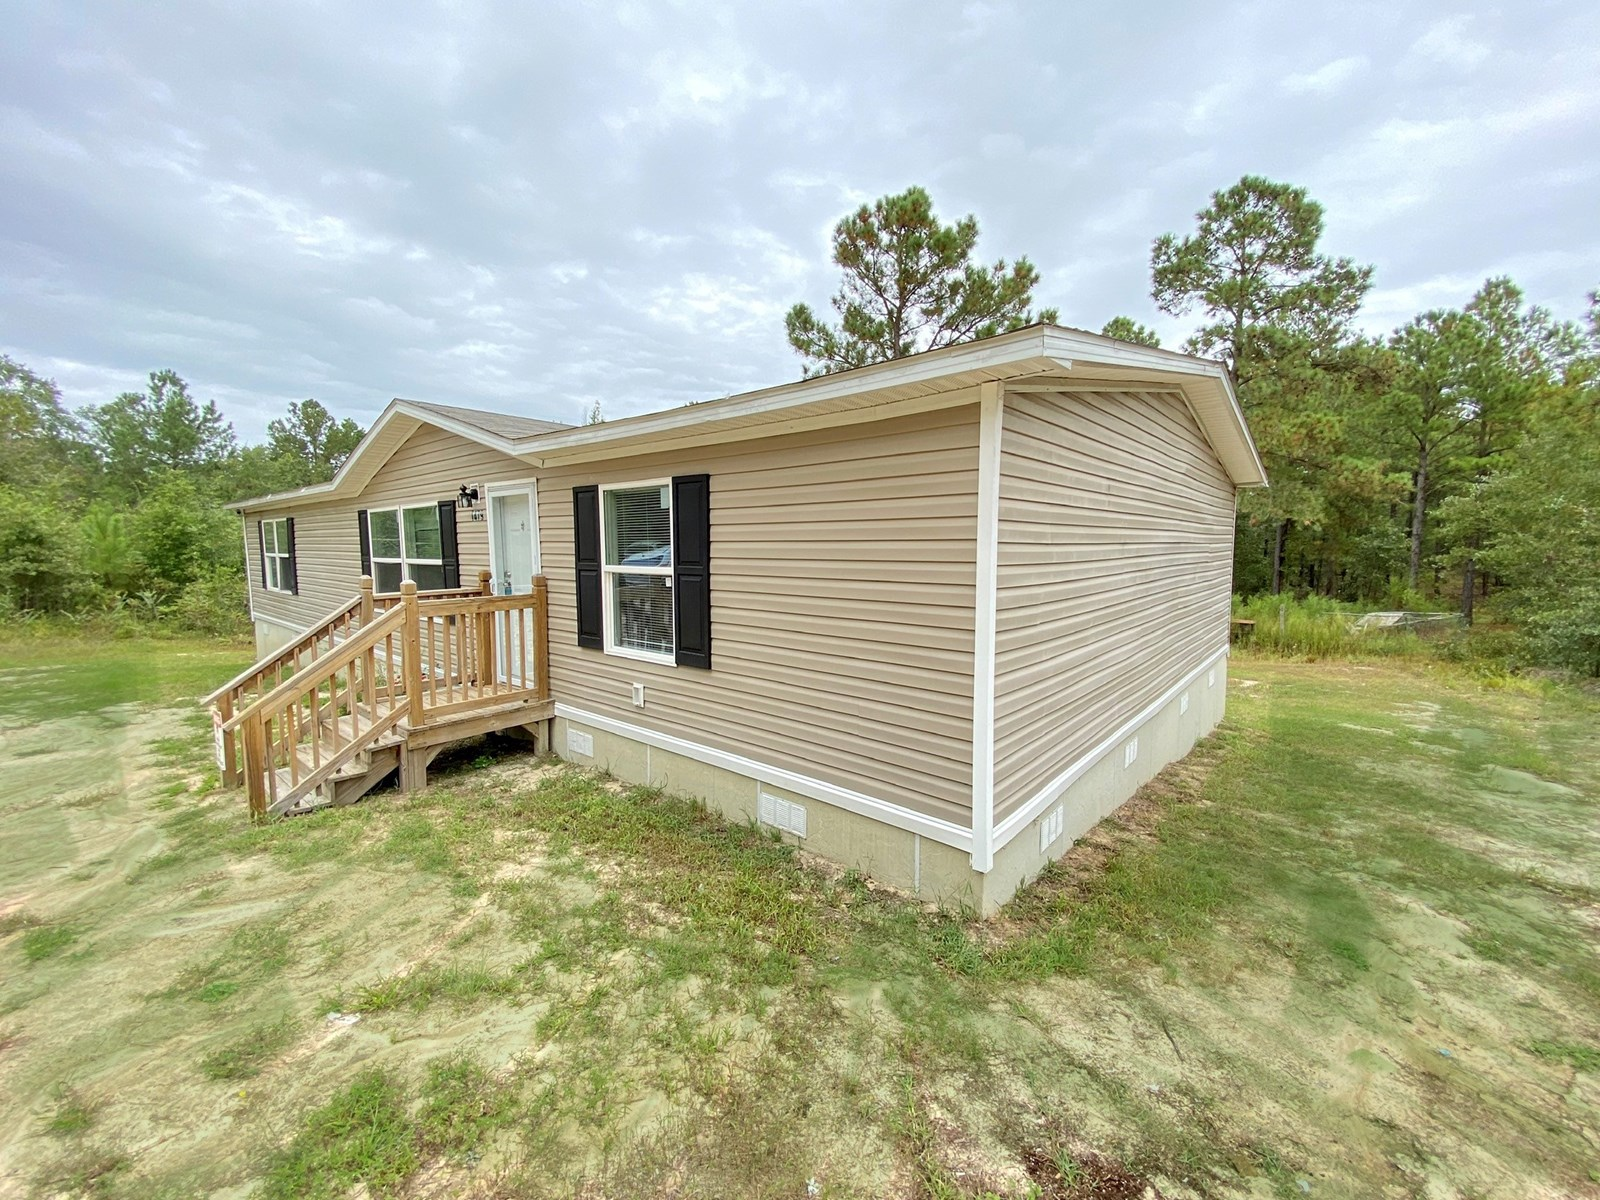 Affordable Country Home - 1500 sq ft -  Built 2016 - $85,900